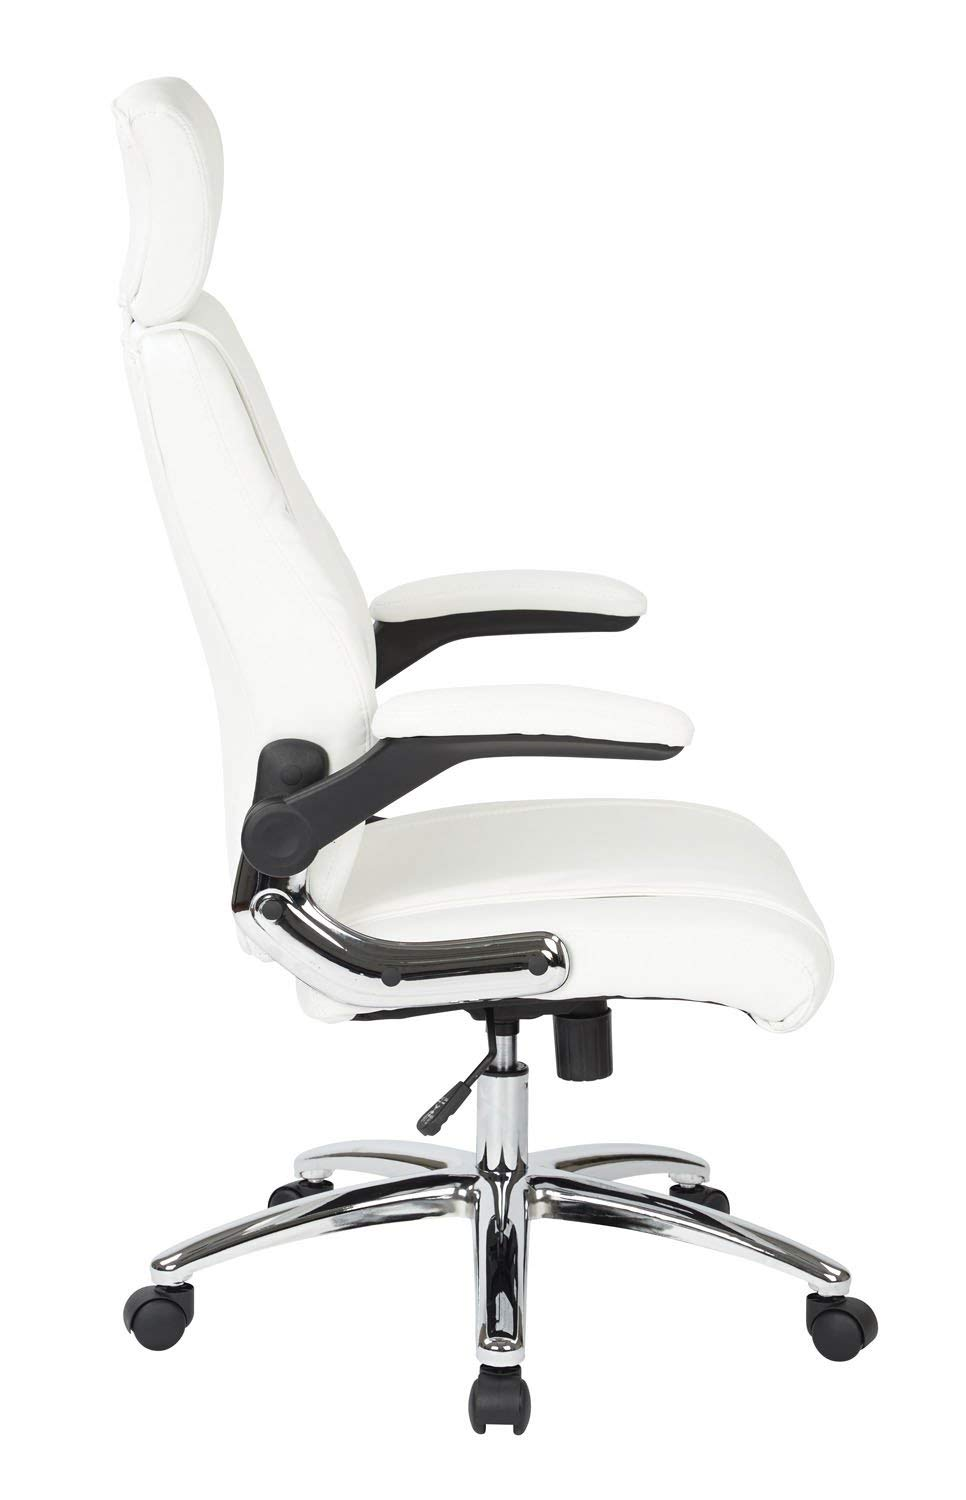 Work Smart FL27513C-U11-osp Executive Faux Leather Chair, White